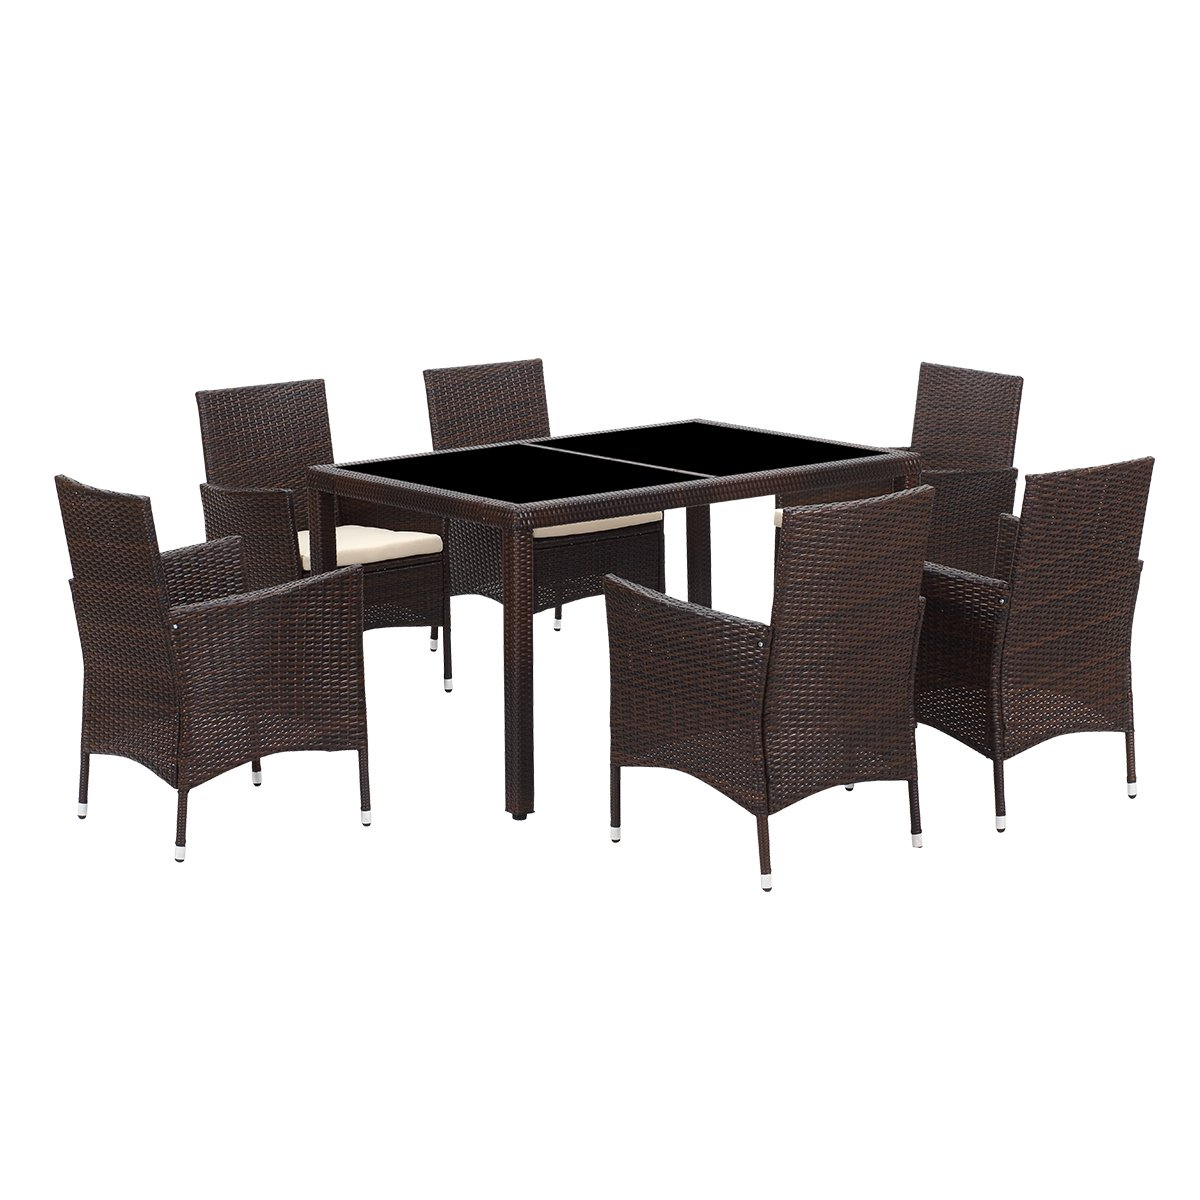 Wisteria Lane 7 Piece Patio Wicker Dining Set, Outdoor Rattan Dining Furniture Glass Table Cushioned Chair,Brown by Wisteria Lane